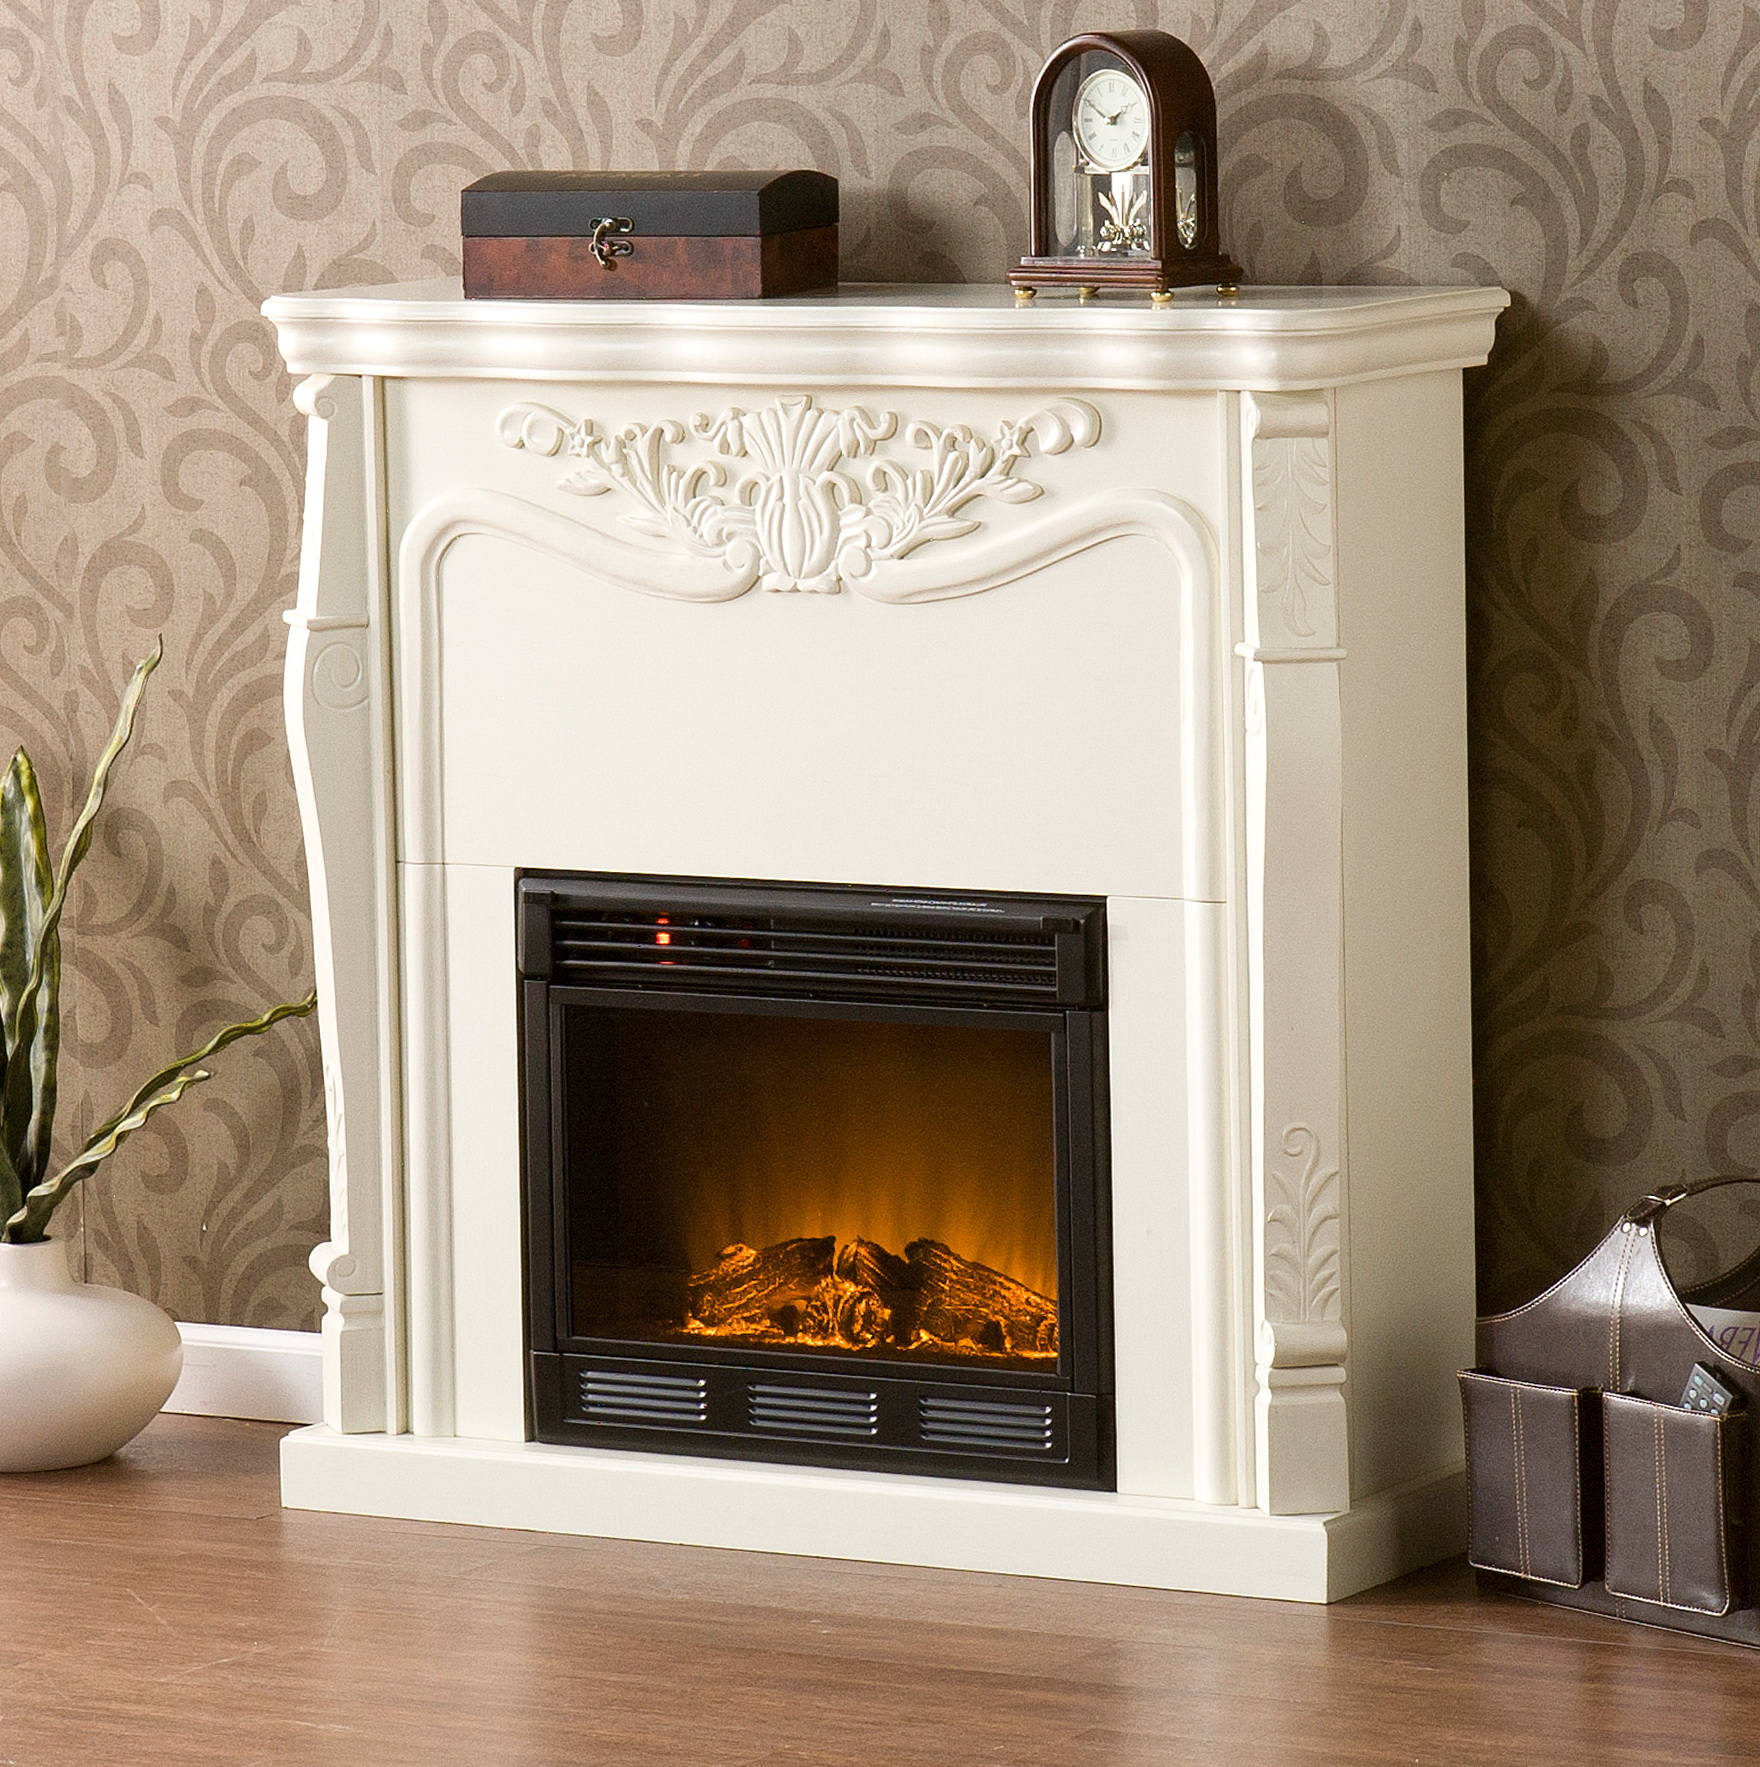 Ebay Electric Fireplaces On Sale | Home Design Ideas